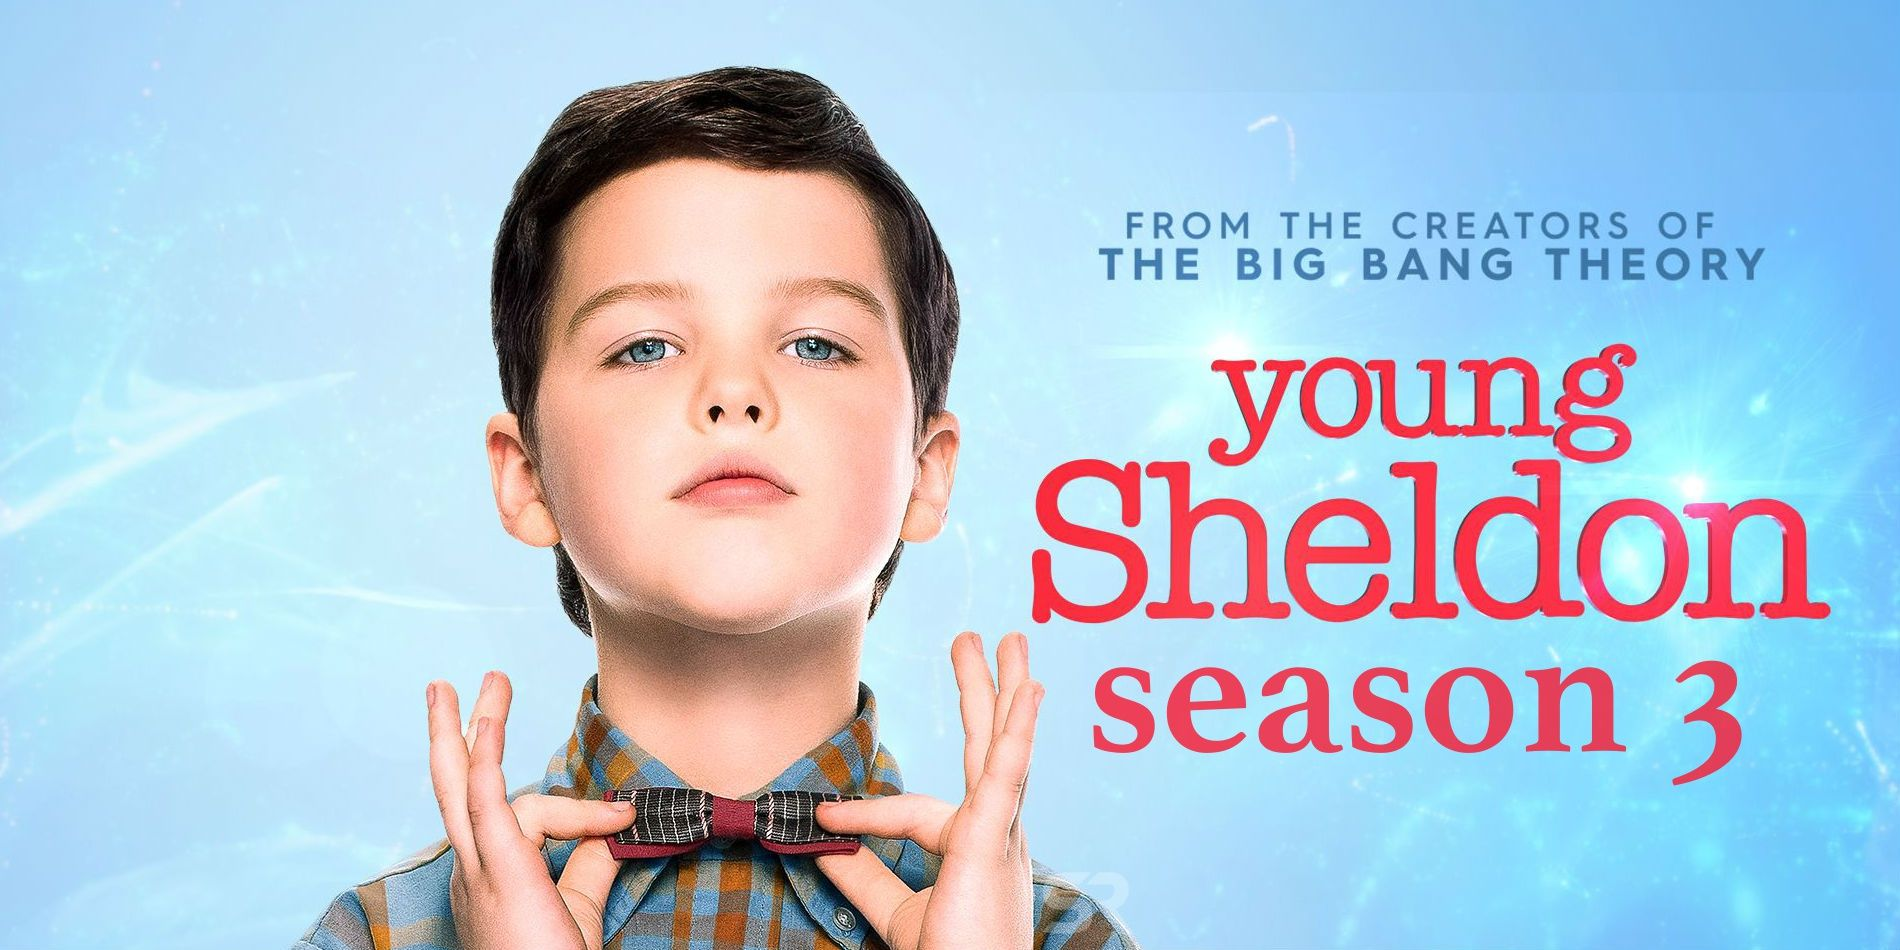 Young Sheldon Season 3: Release Date & Story Details